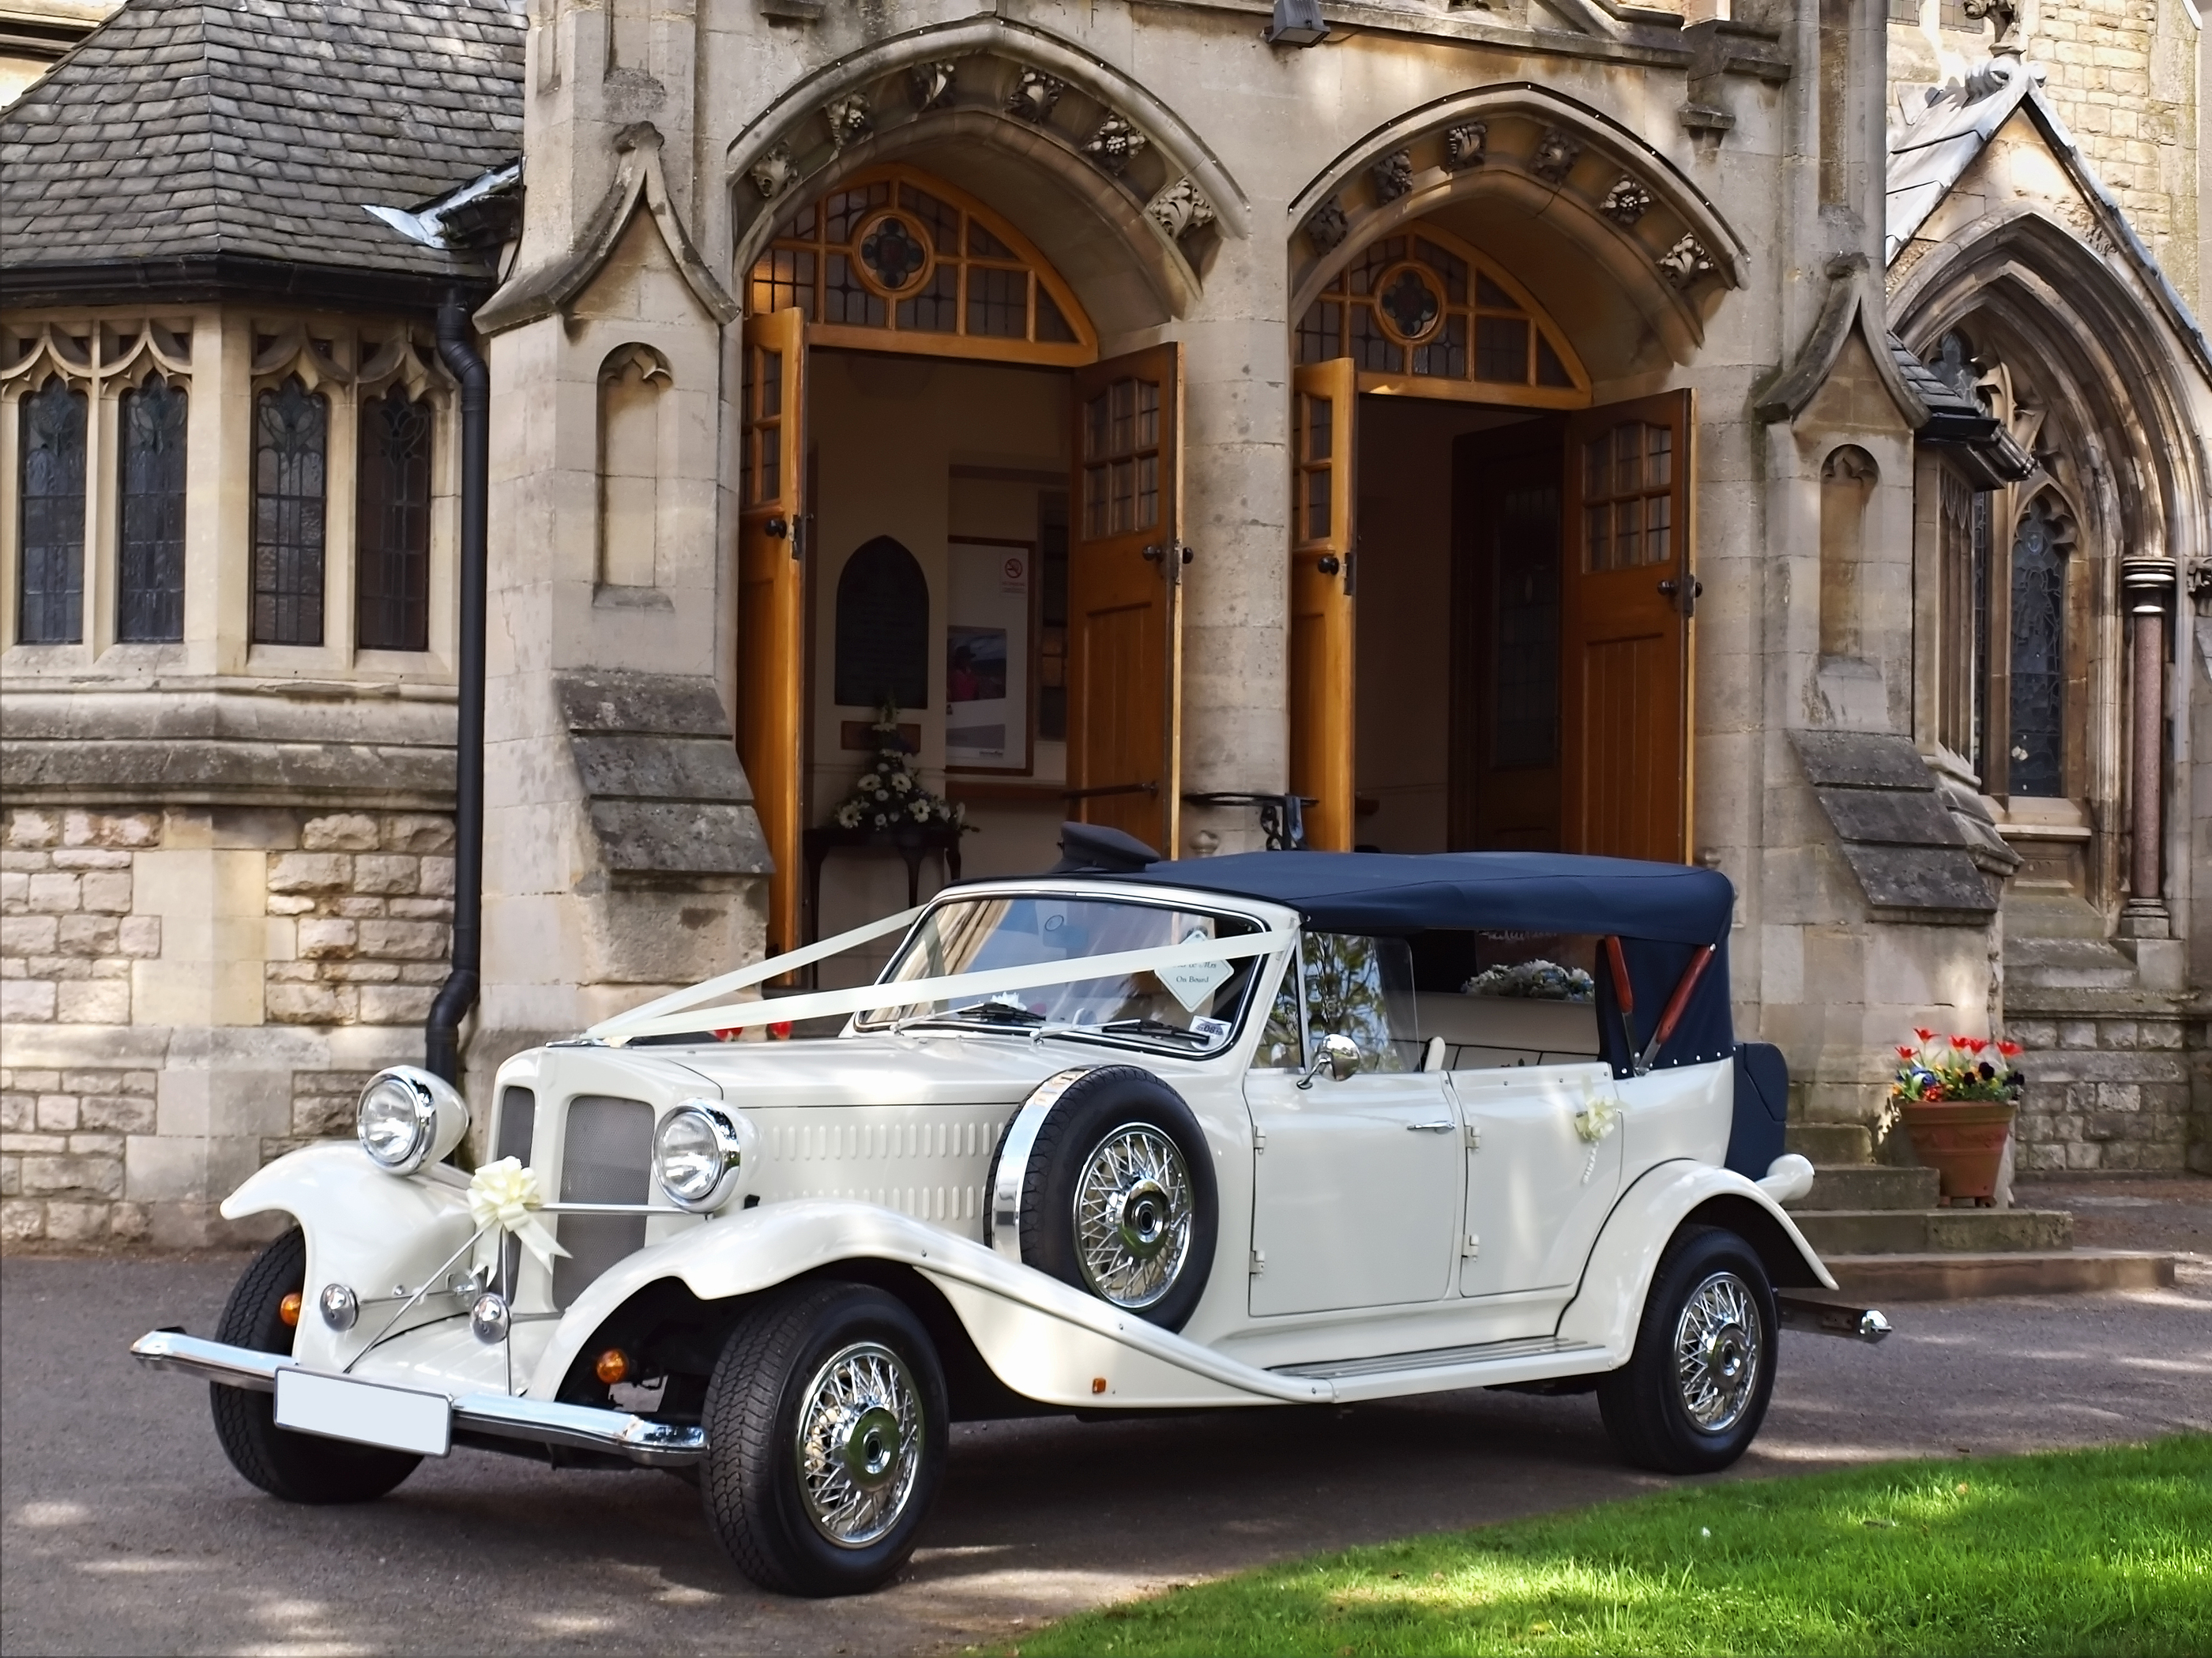 Wedding car in front of church waiting for bride and groom ** Note: Slight blurriness, best at smaller sizes